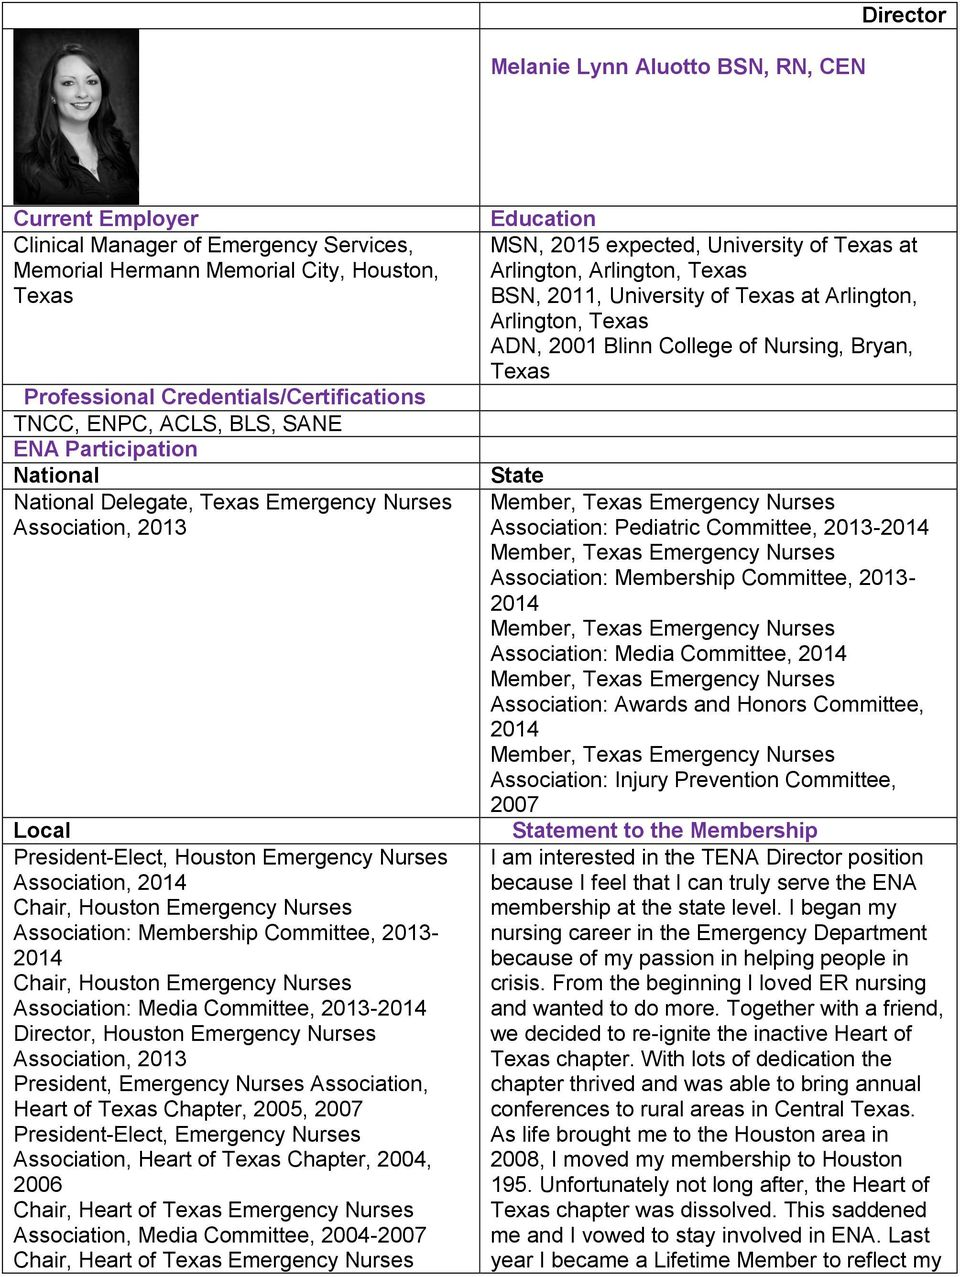 Houston Emergency Nurses Association: Media Committee, 2013-2014 Director, Houston Emergency Nurses Association, 2013 President, Emergency Nurses Association, Heart of Texas Chapter, 2005, 2007